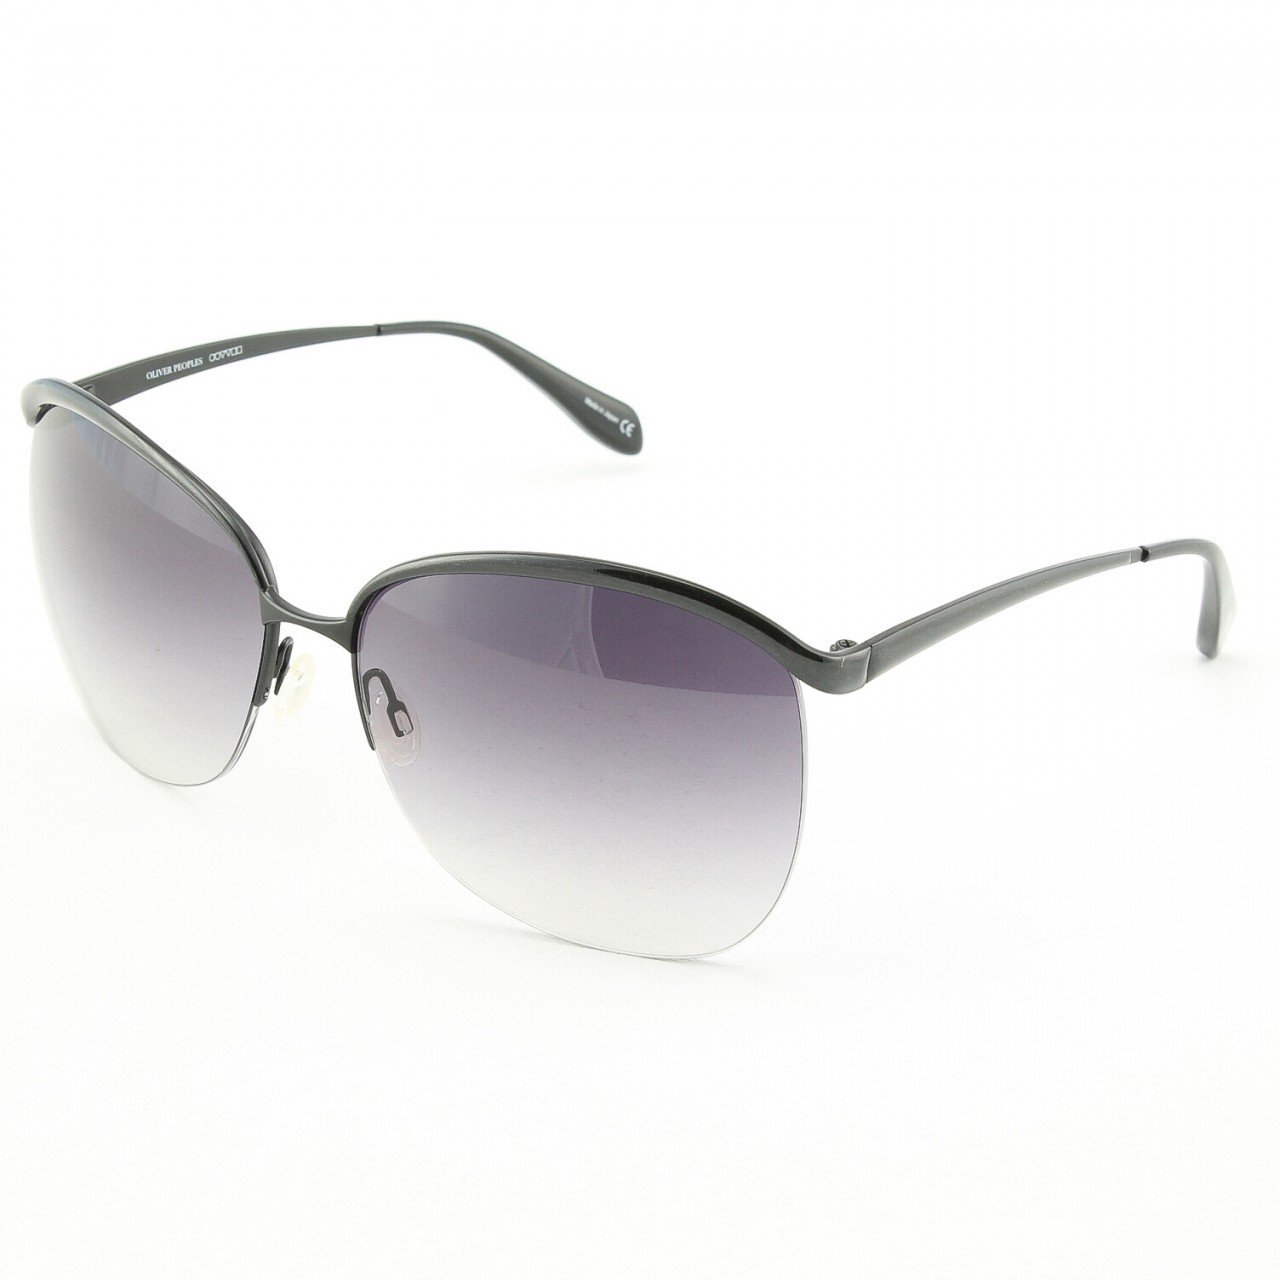 Oliver Peoples Lamour 1092S 5024/11 Sunglasses Col. Black Pearl with Grey Gradient Lenses